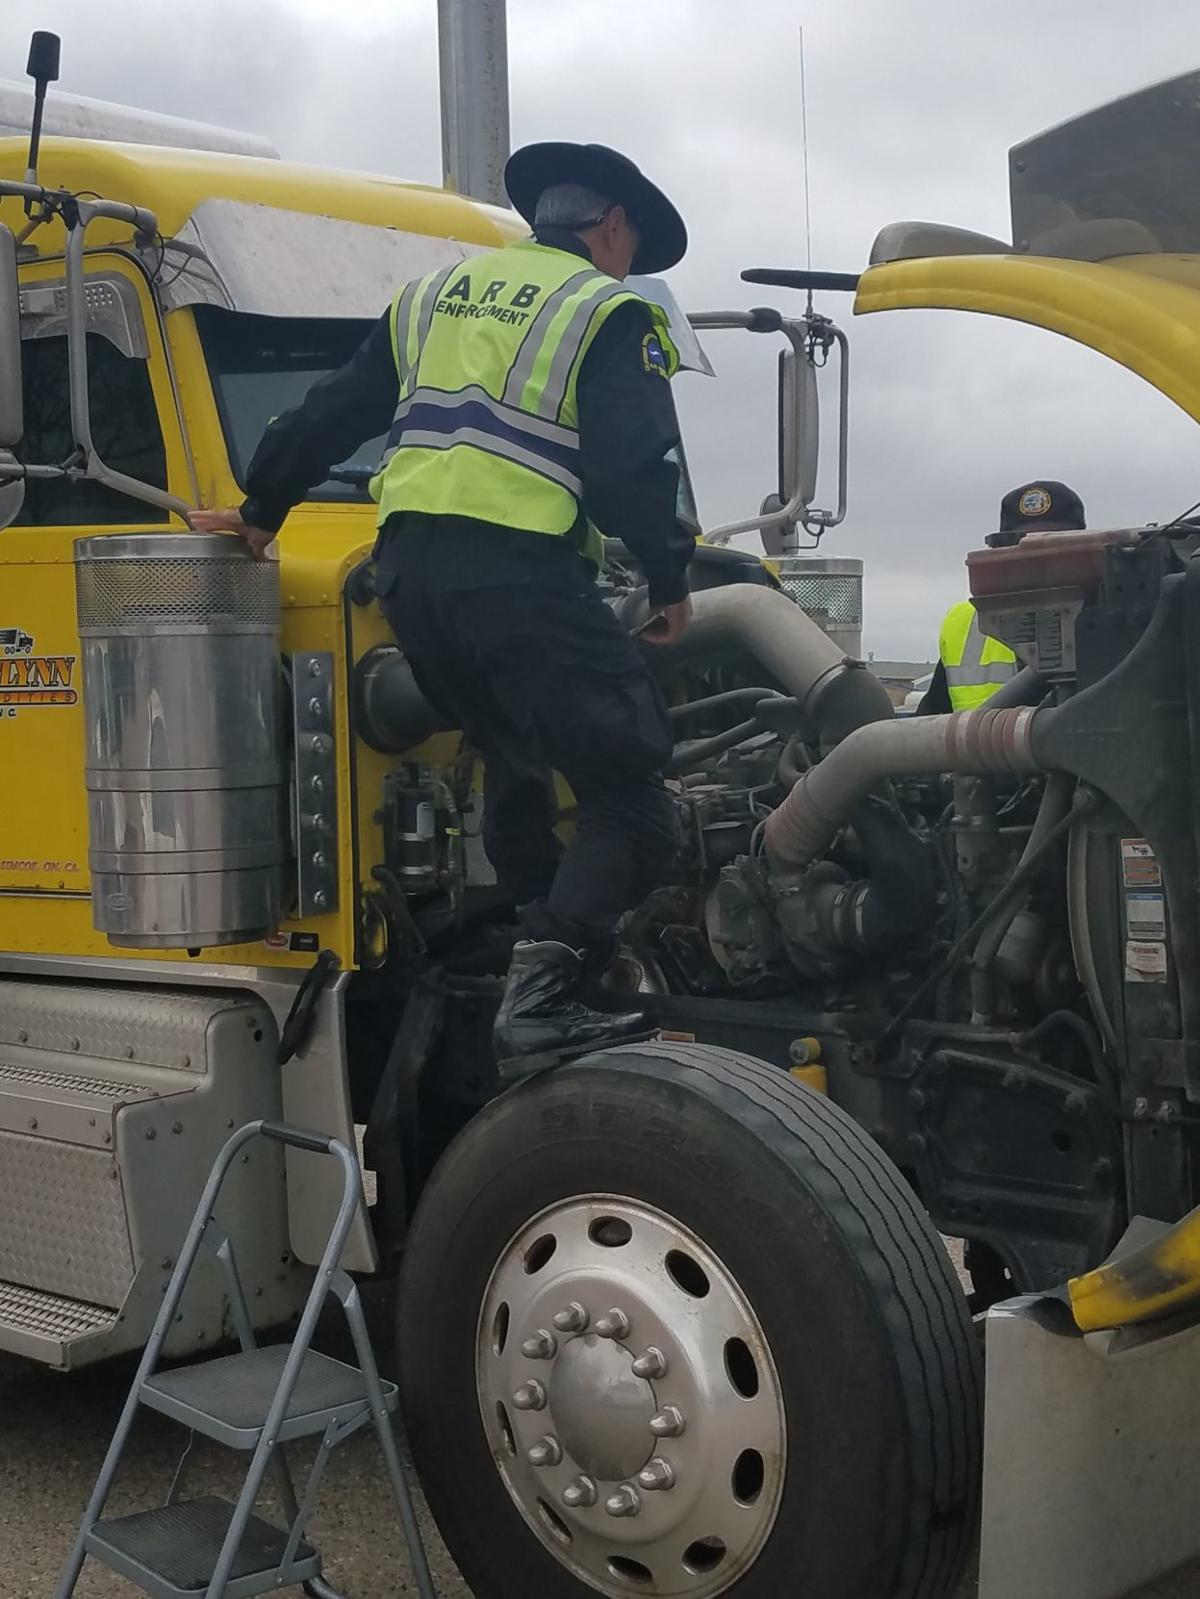 State Air Resources Board Chp Looking For Dirty Big Rigs In Santa Fuel Filter On Truck 052218 Inspection Carb